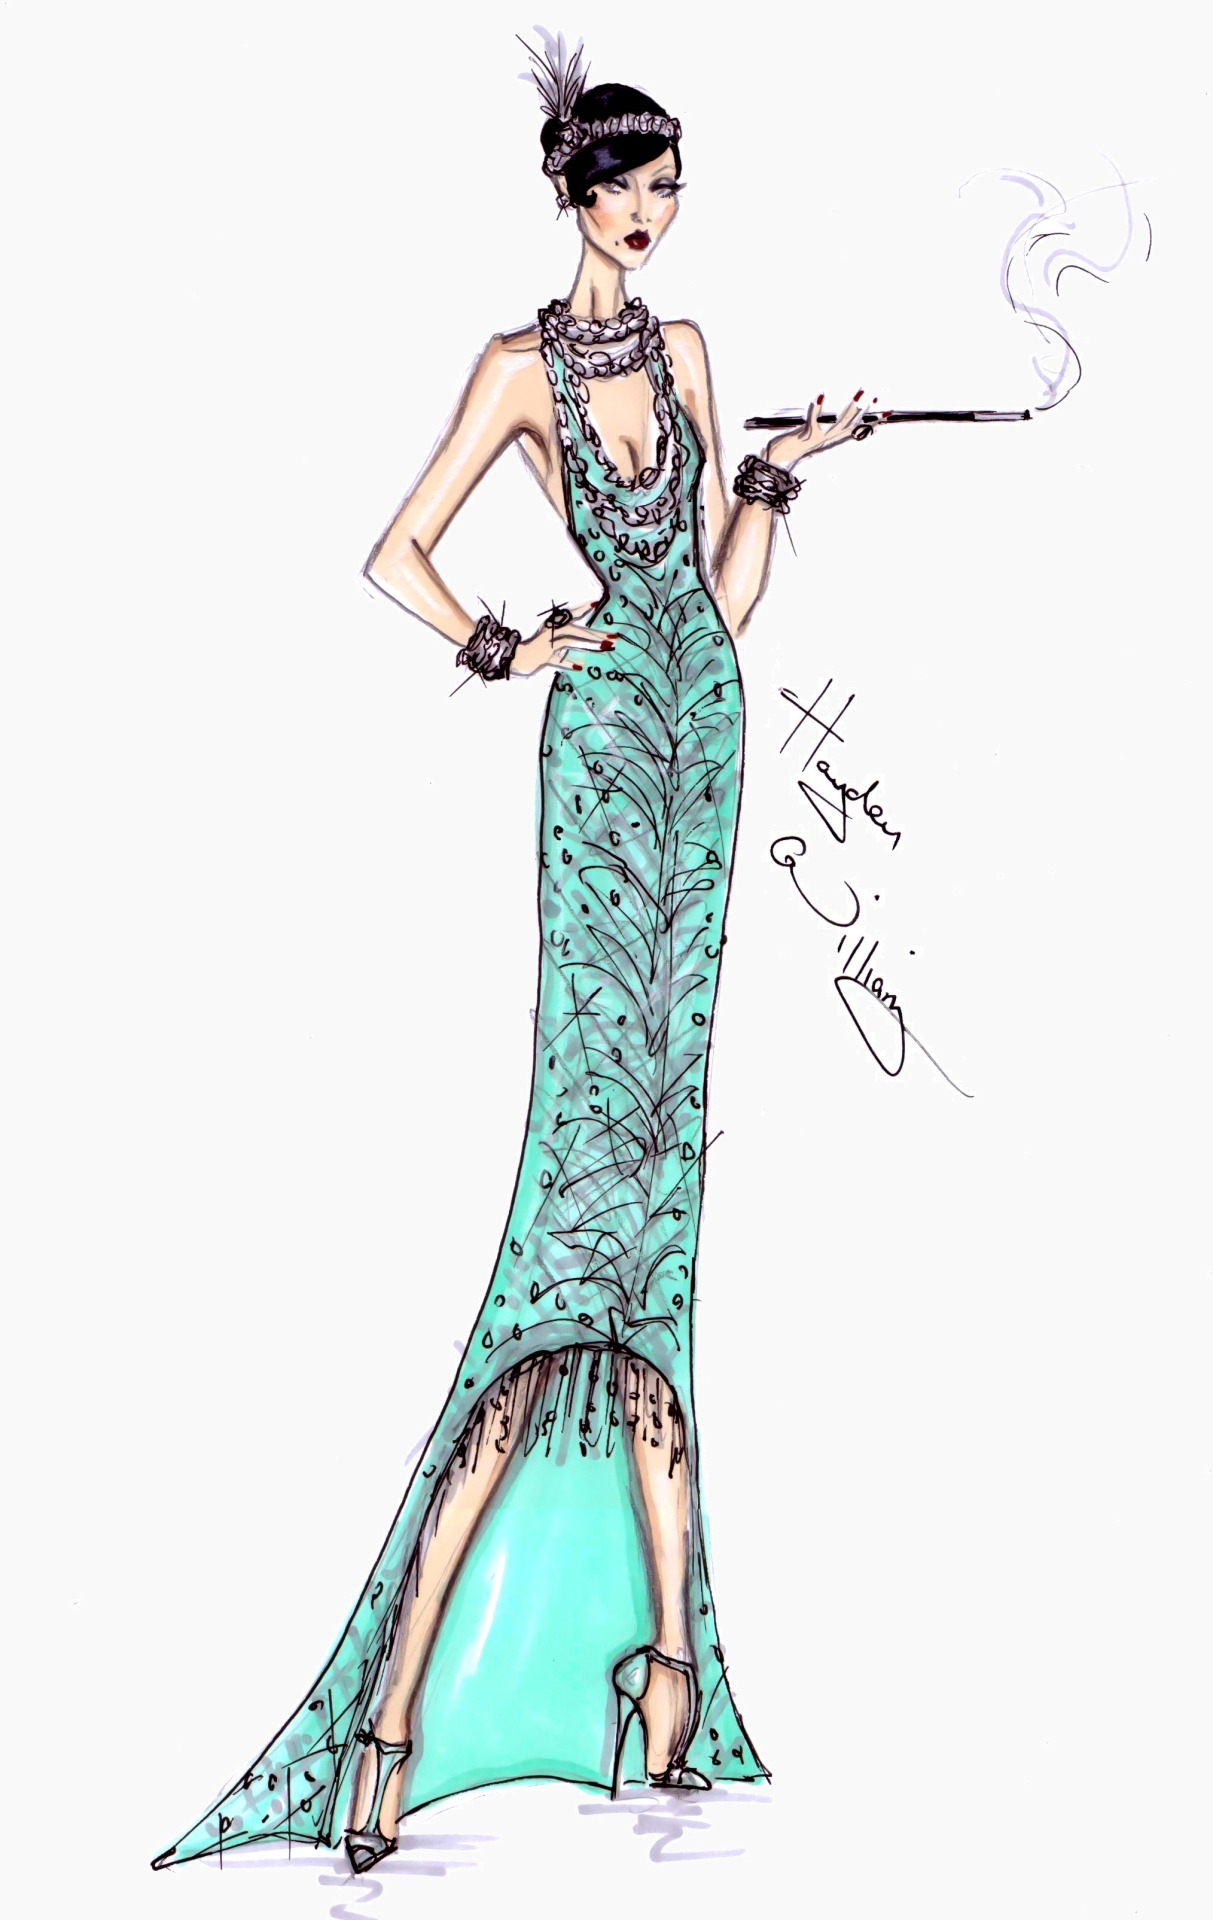 haydenwilliamsillustrations:  The Great Gatsby collection by Hayden Williams pt2